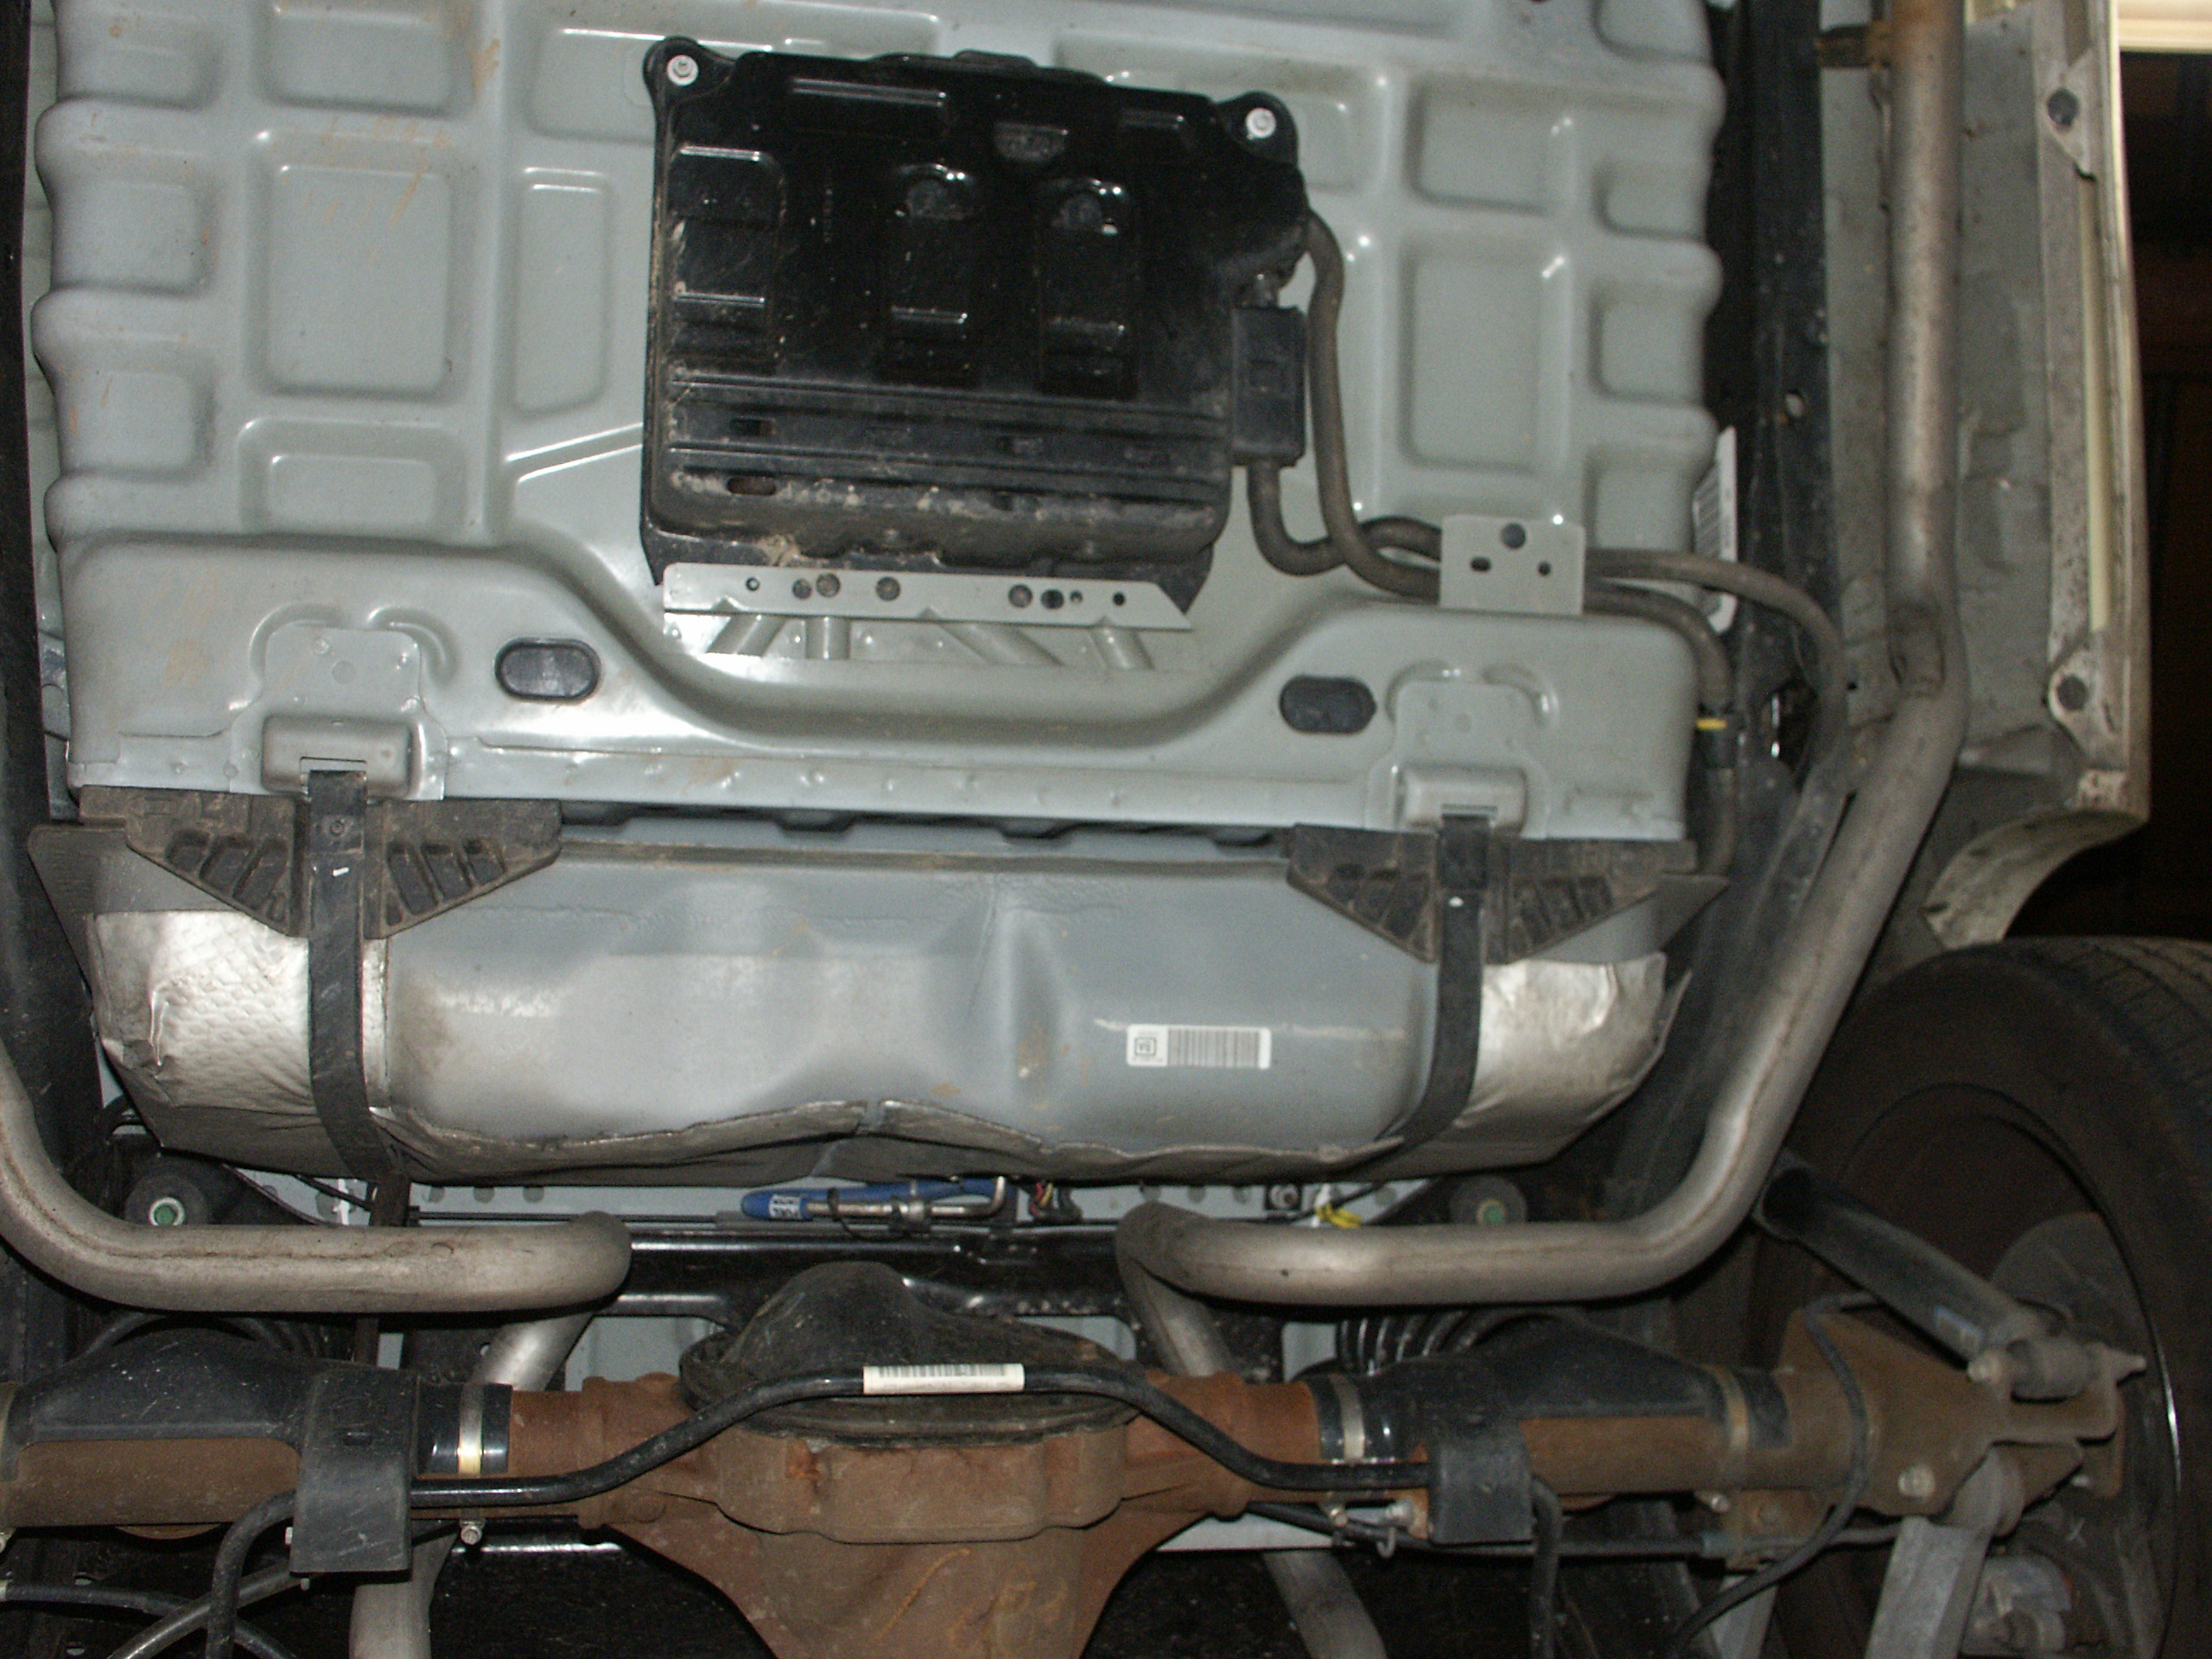 Starting in the 2003 model year the shock absorbers were relocated outside the frame rail